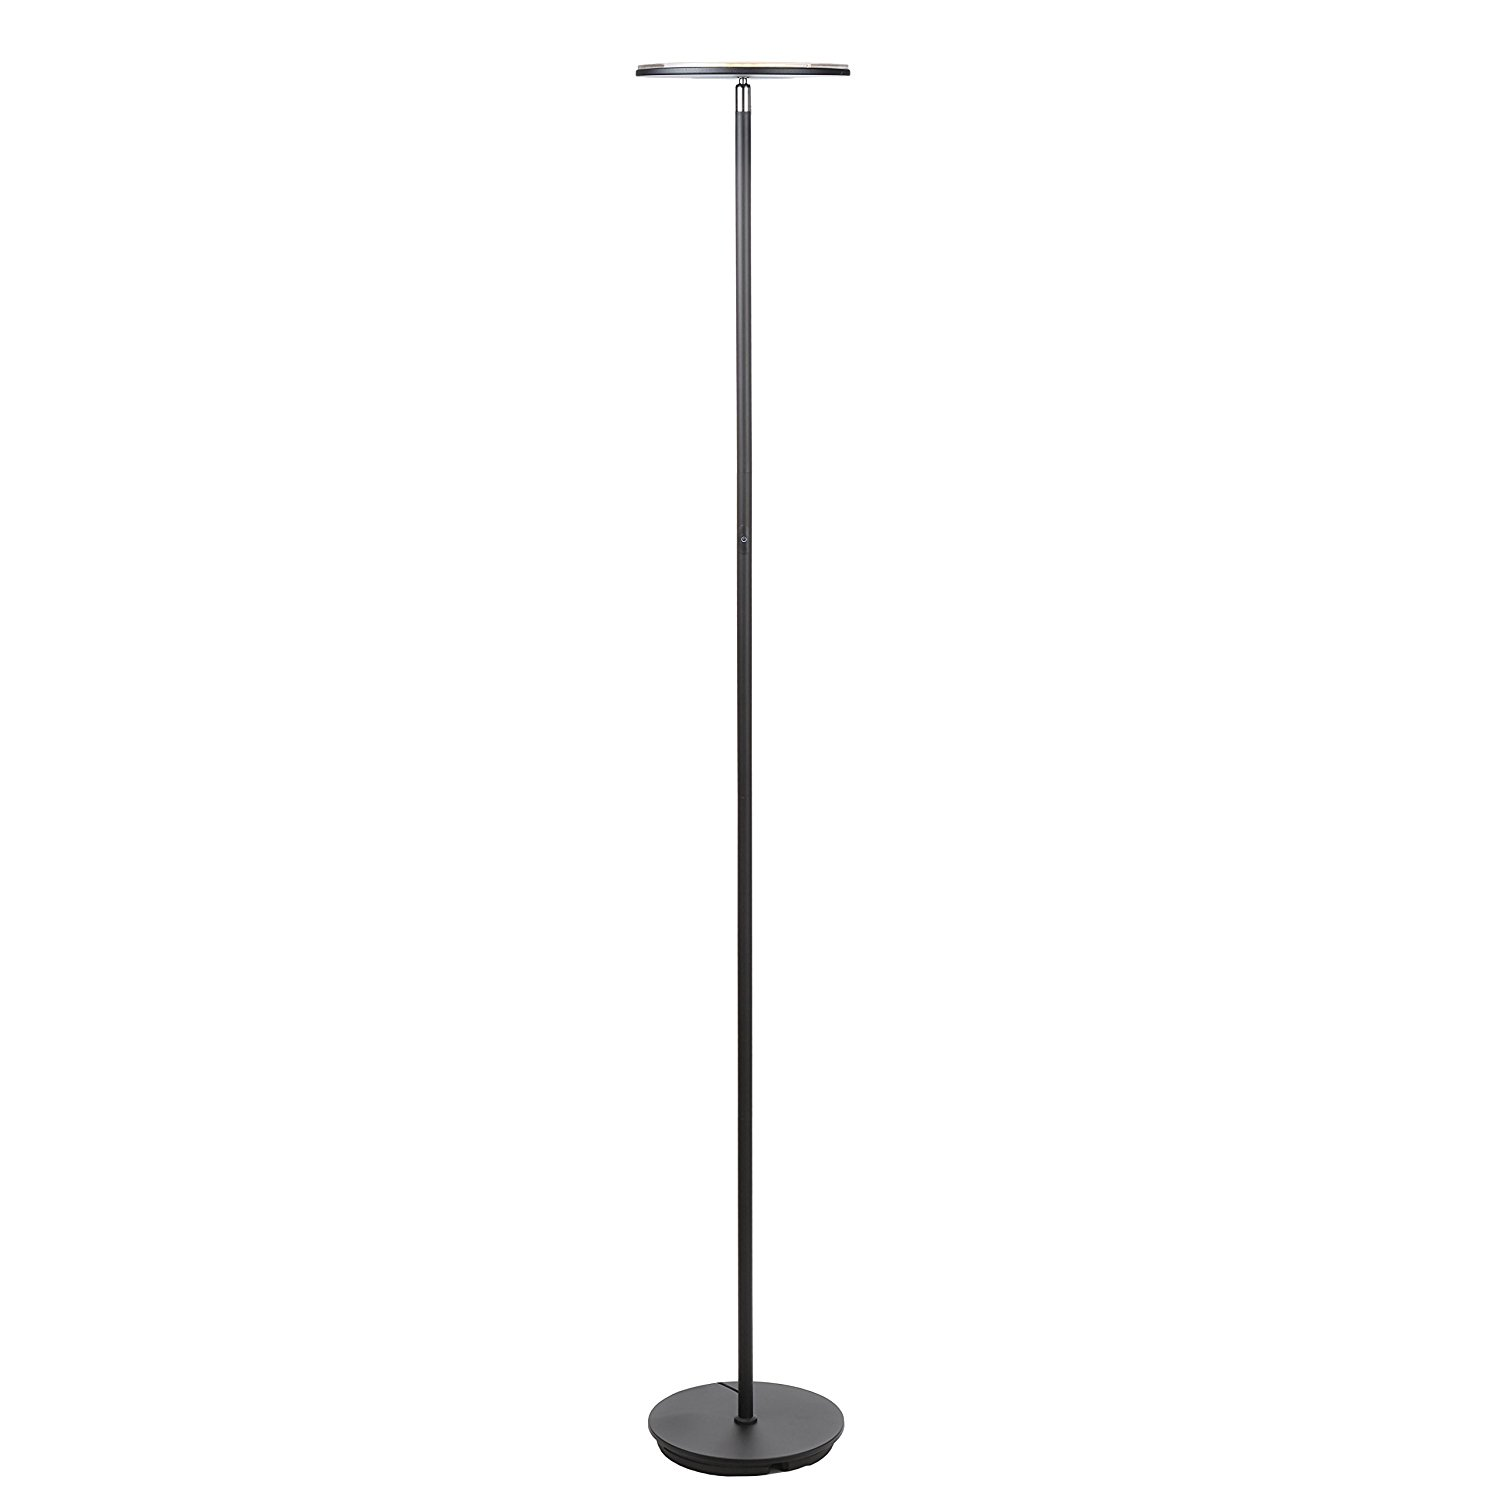 Great tall lamps brightech sky led torchiere floor lamp - energy saving, dimmable adjustable  lamp, hiqsufr